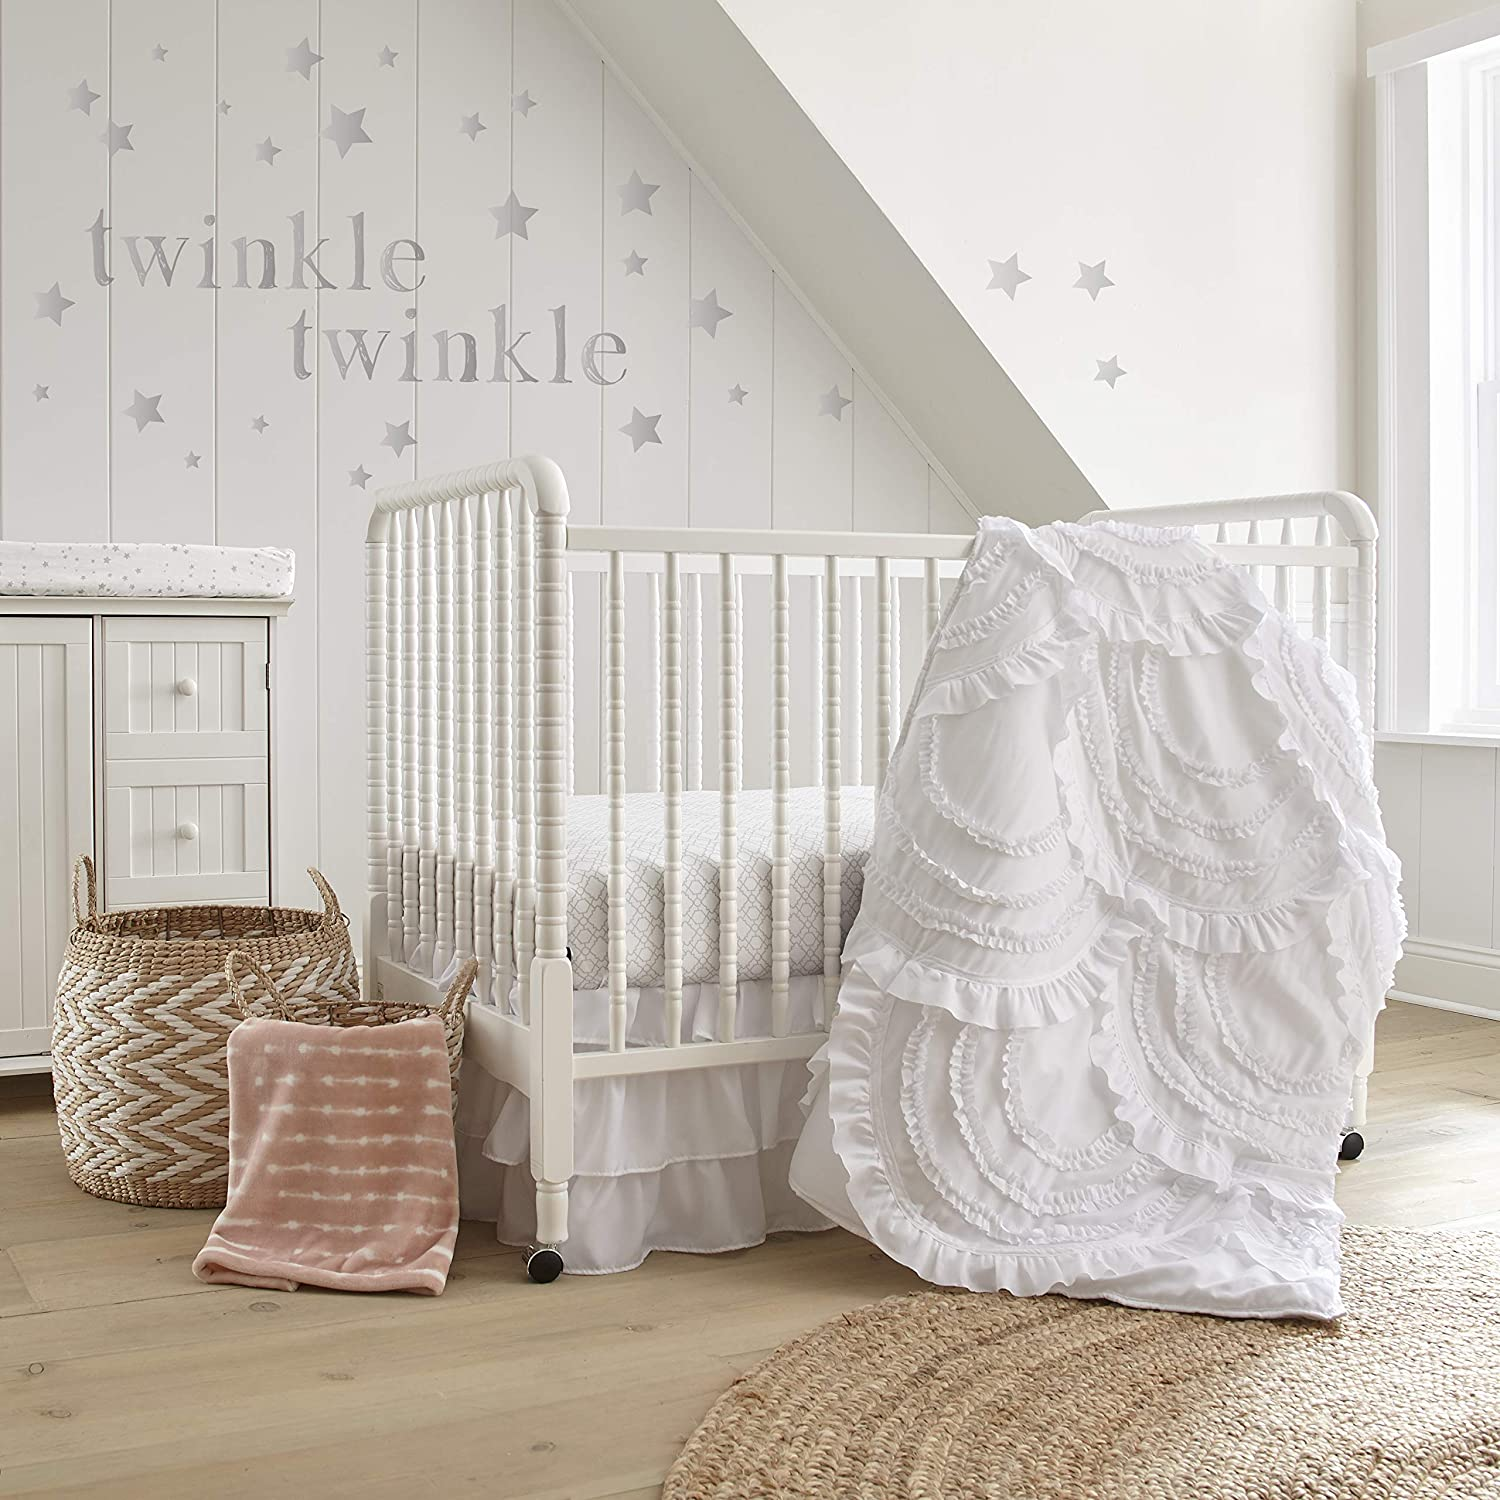 Girl's and Boy's Bedding All White Crib Set with Ruffled Dtails